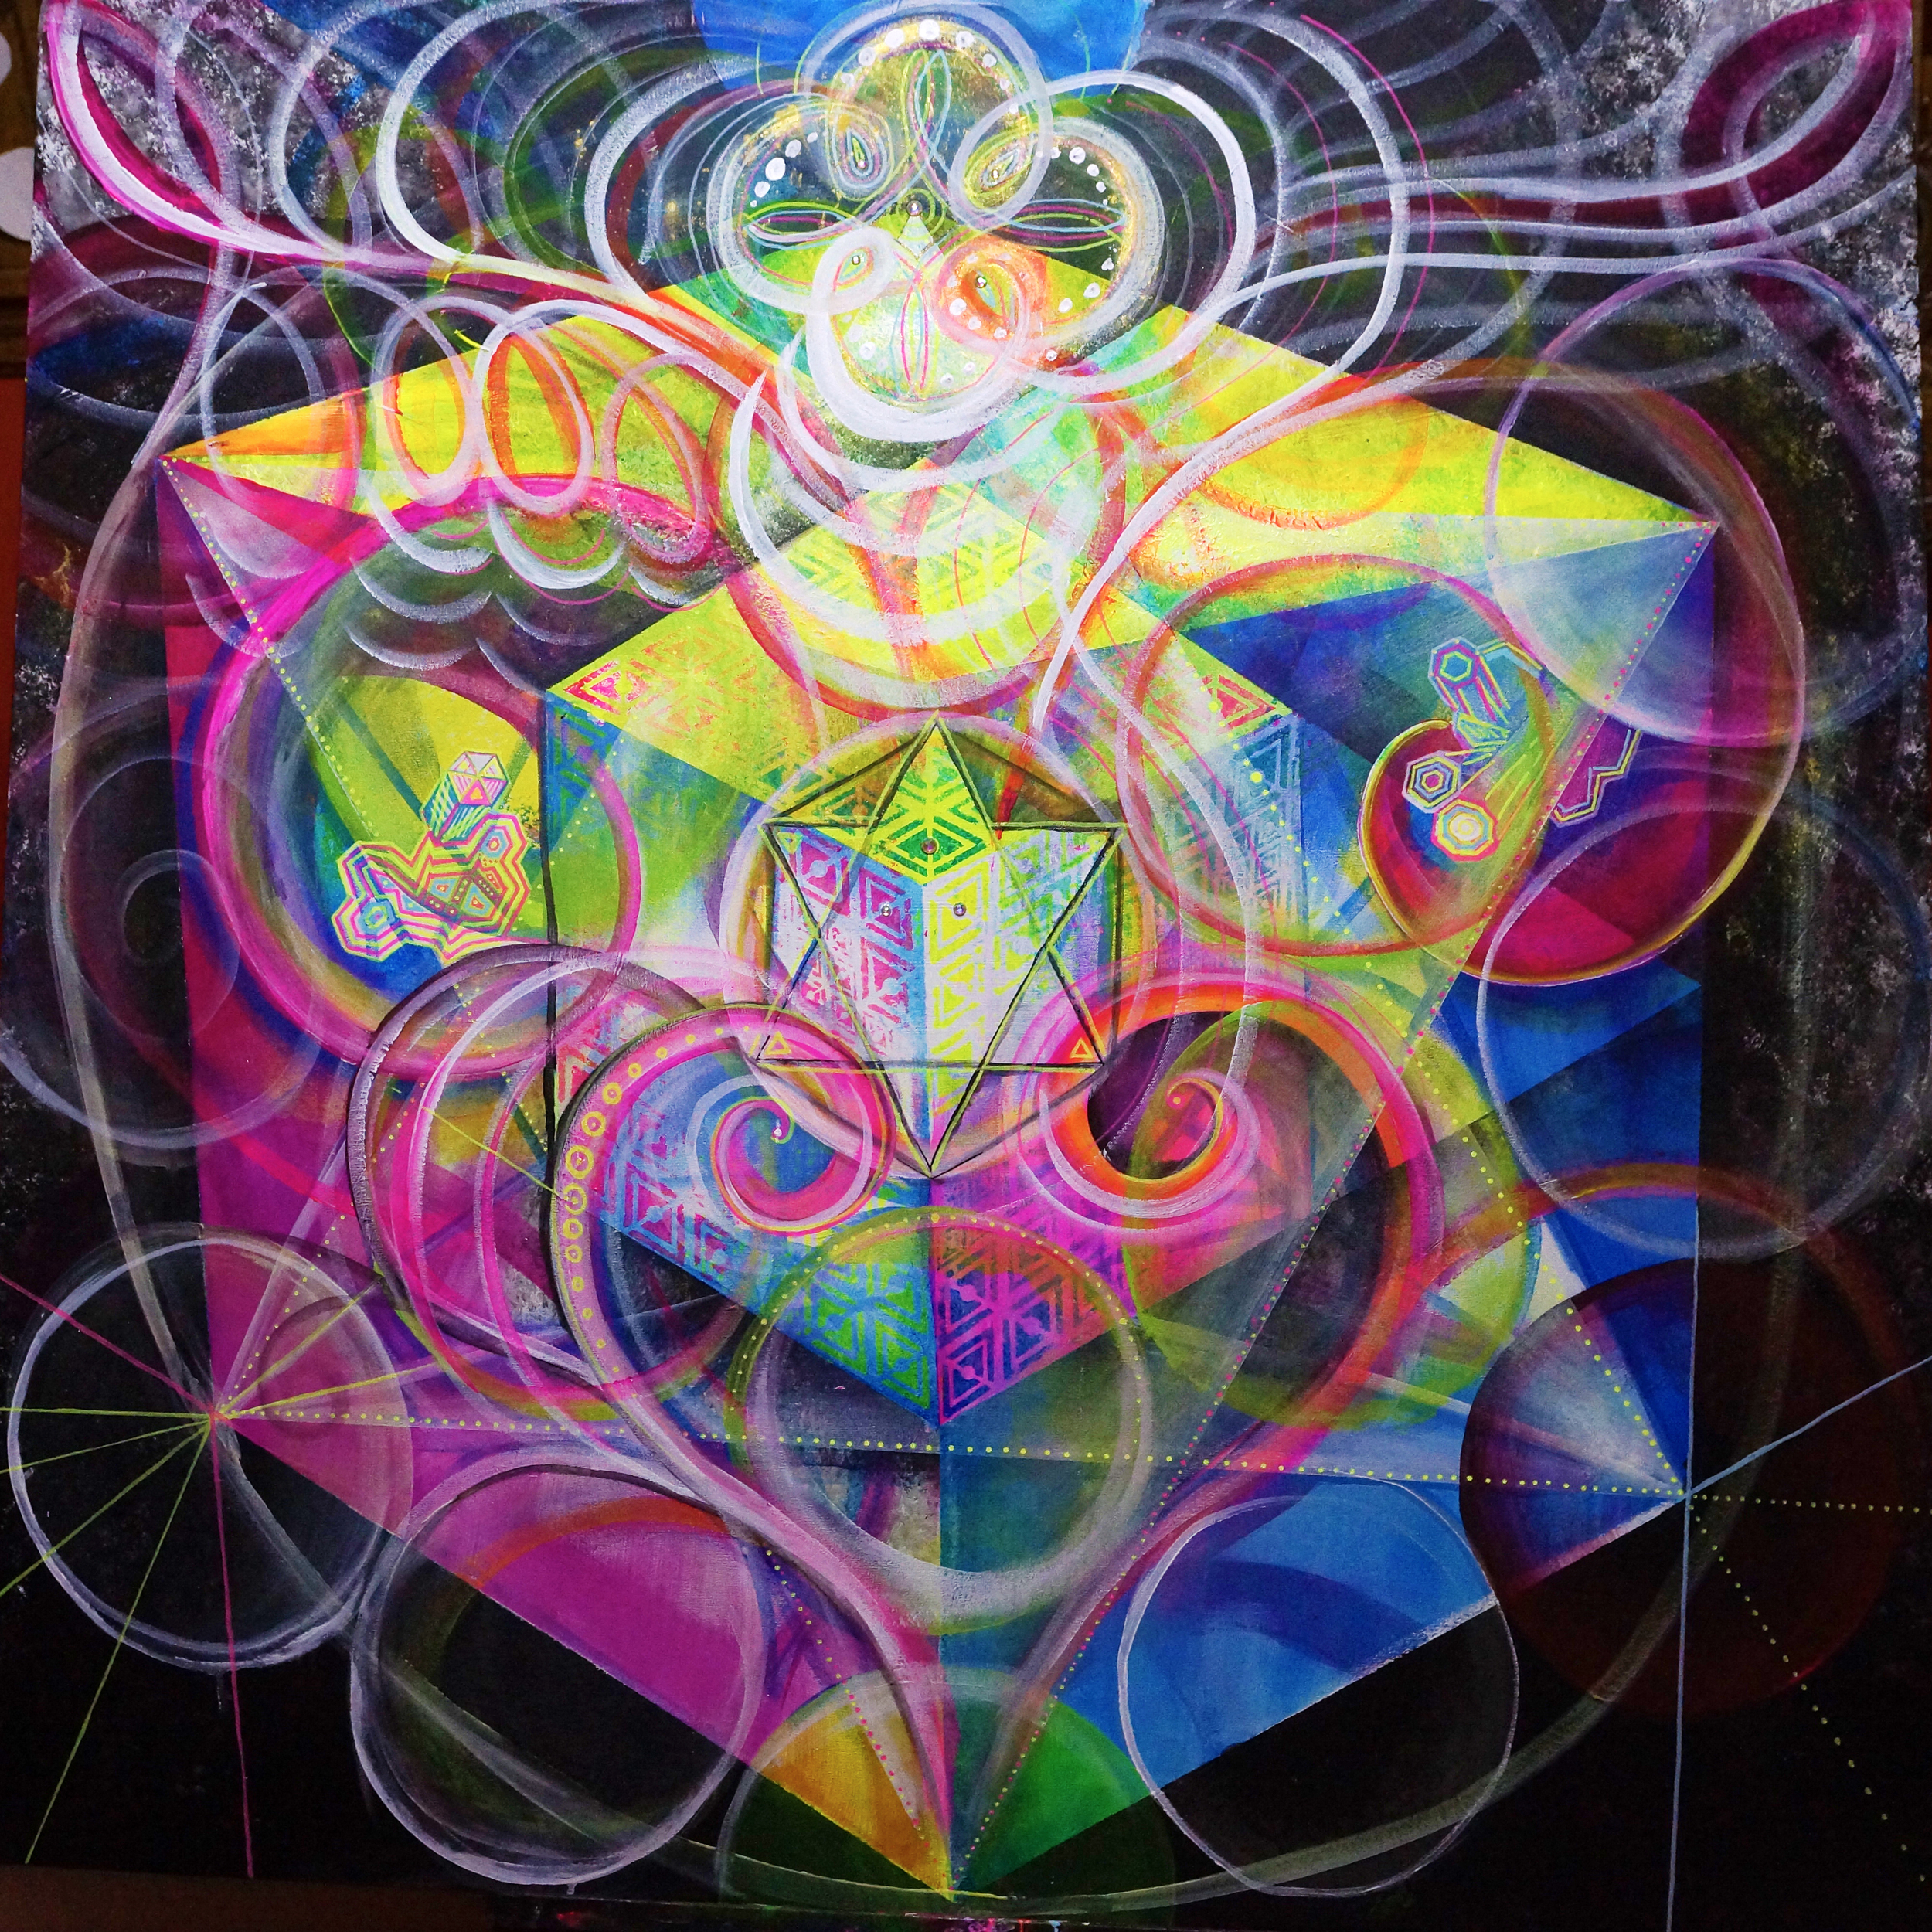 4ftx4ft, UV Reactive, glow in the dark, and dayglo paints on canvas. Sacred Geometry and emotion play together.